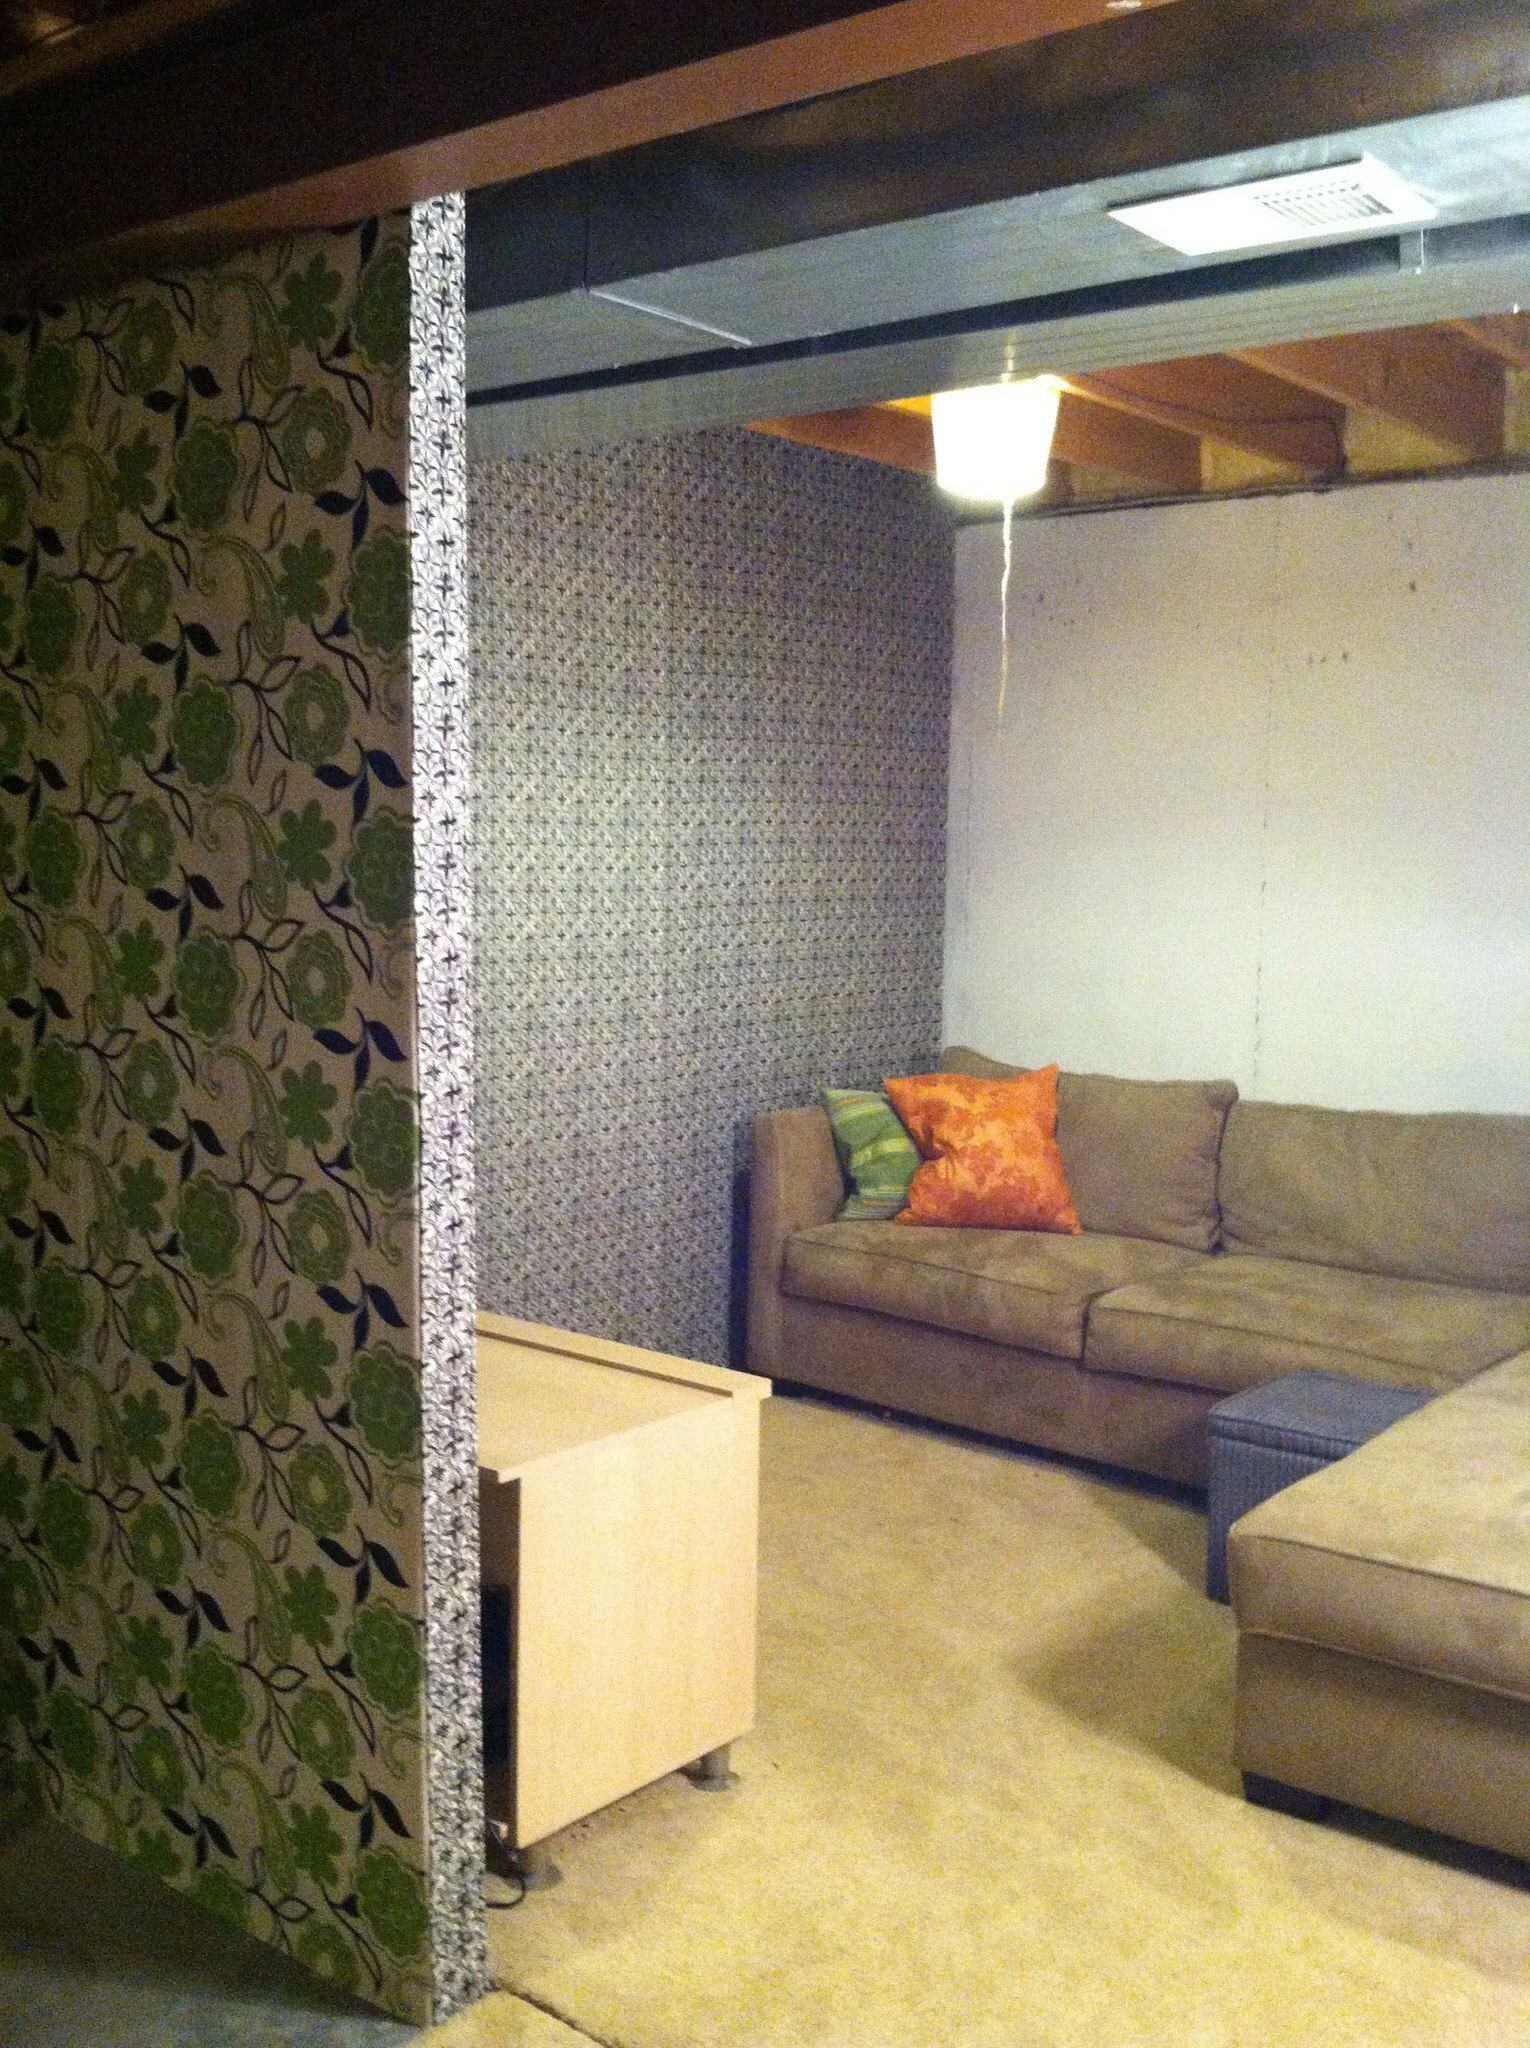 Unfinished Basement Redo With Fabric And Staple Gun. EASY